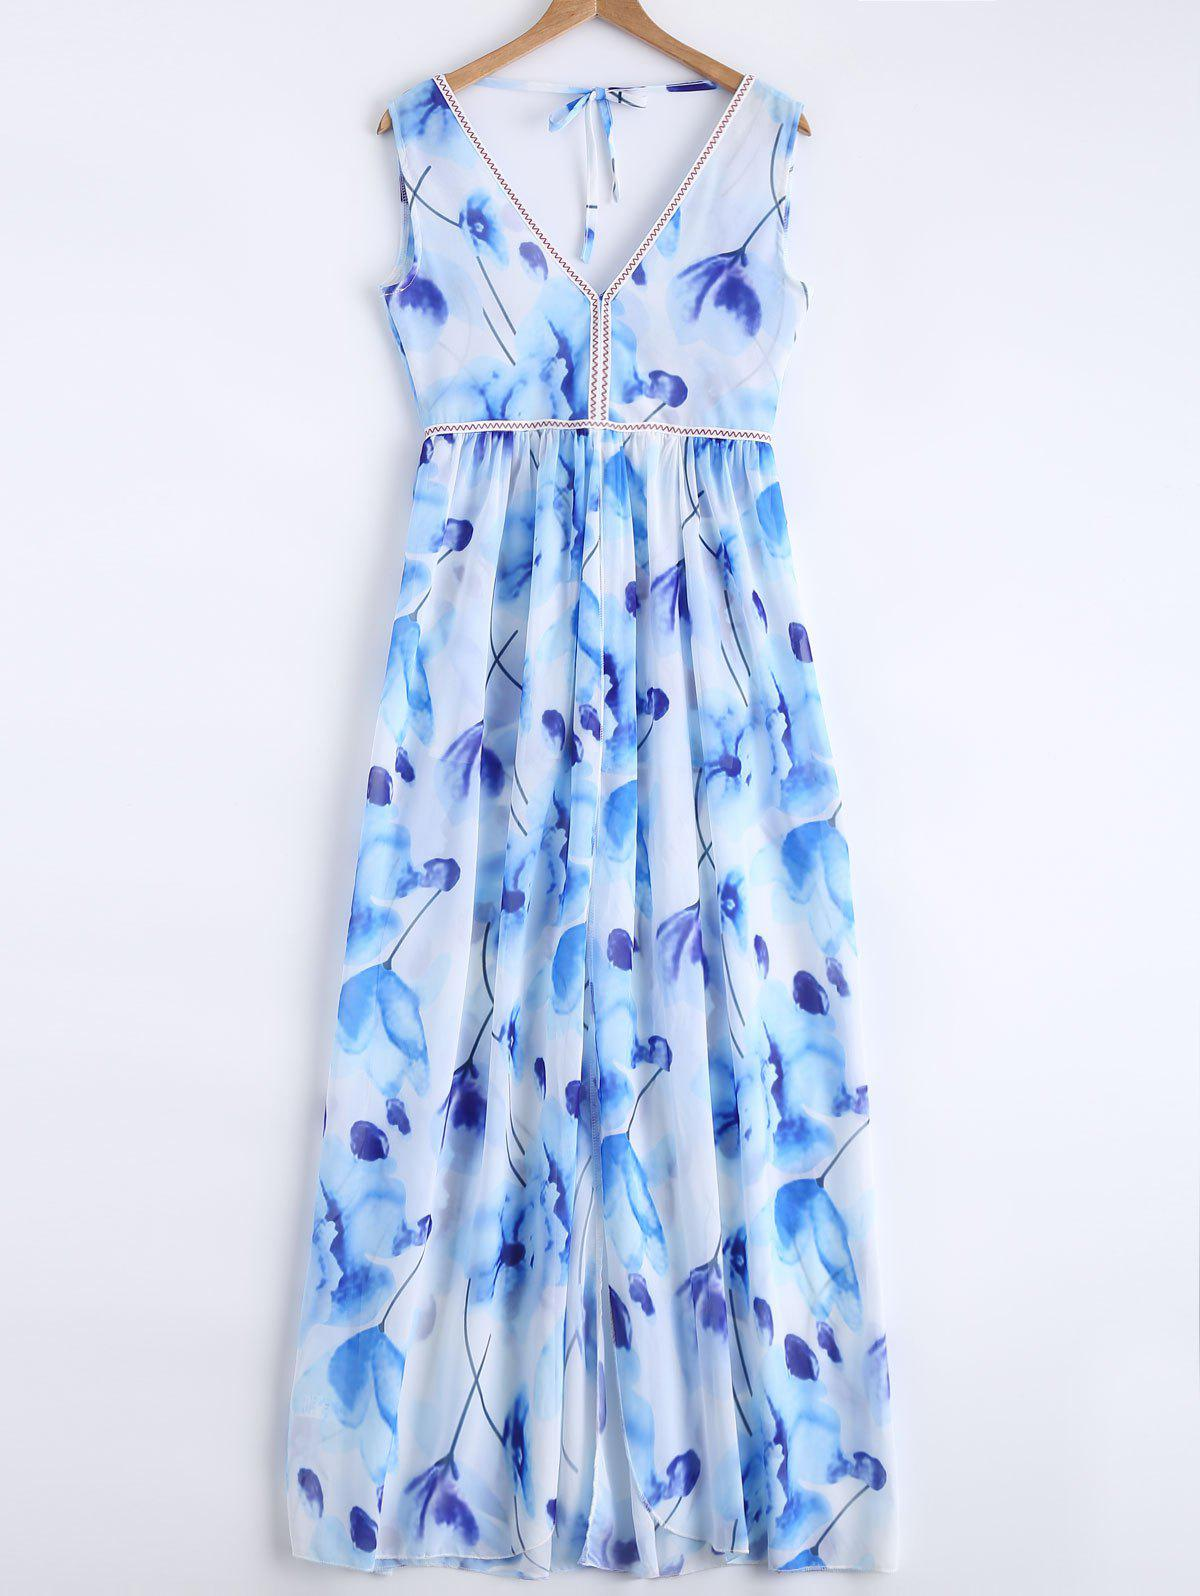 Sweet Backless Floral Dress For Women - LIGHT BLUE M